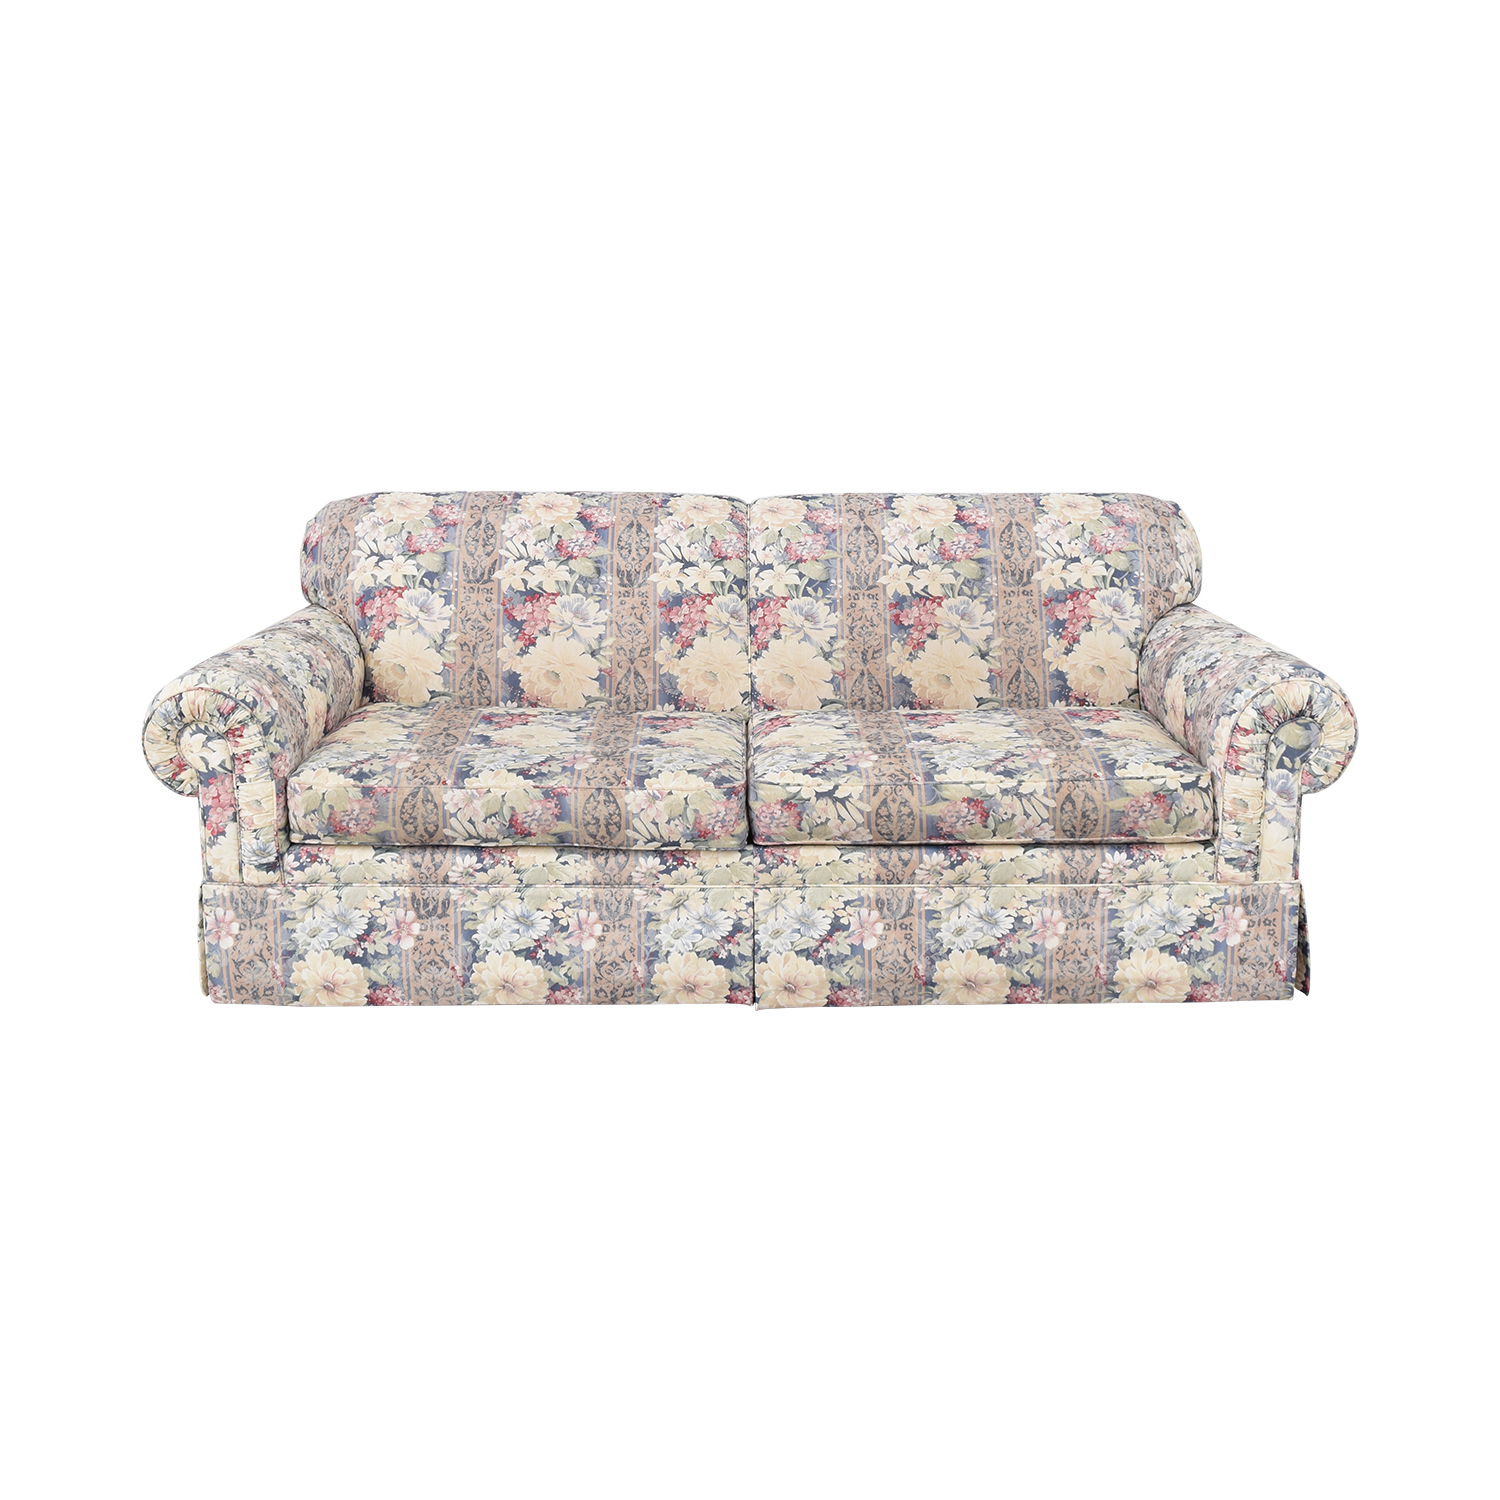 La-Z-Boy La-Z-Boy Two Cushion Sofa on sale